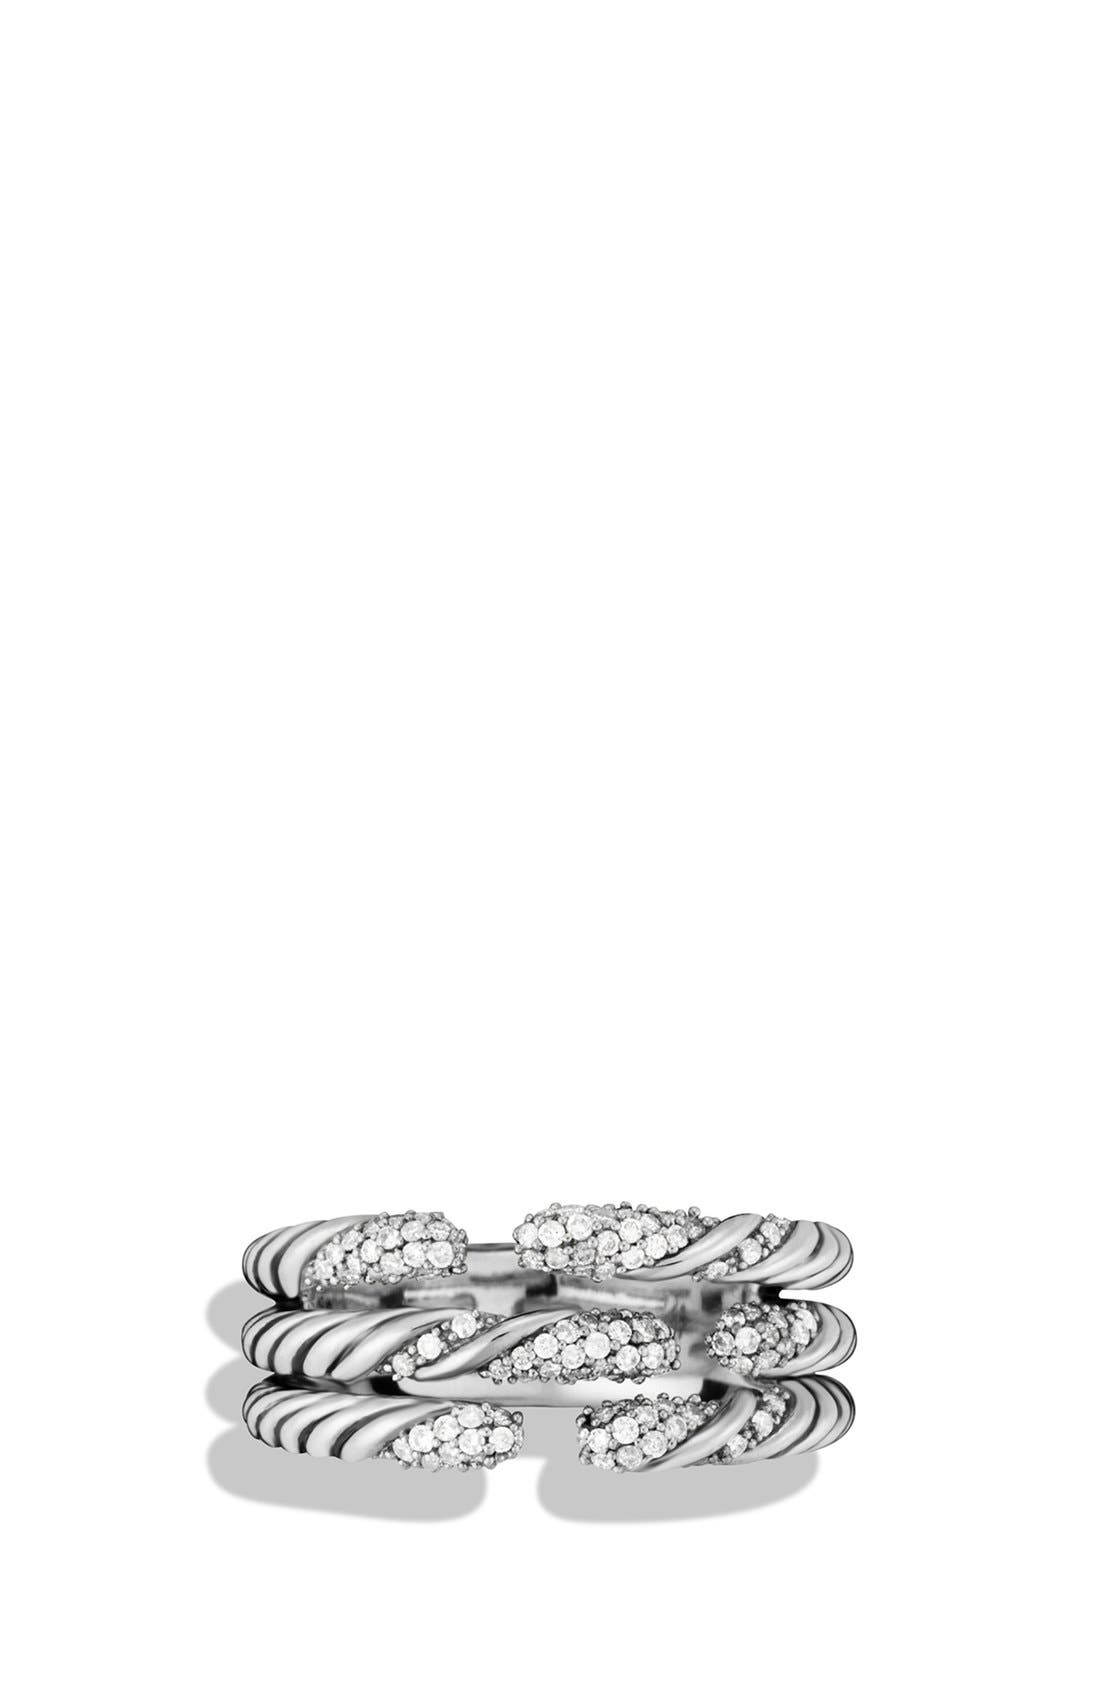 Alternate Image 3  - David Yurman 'Willow' Three-Row Ring with Diamonds